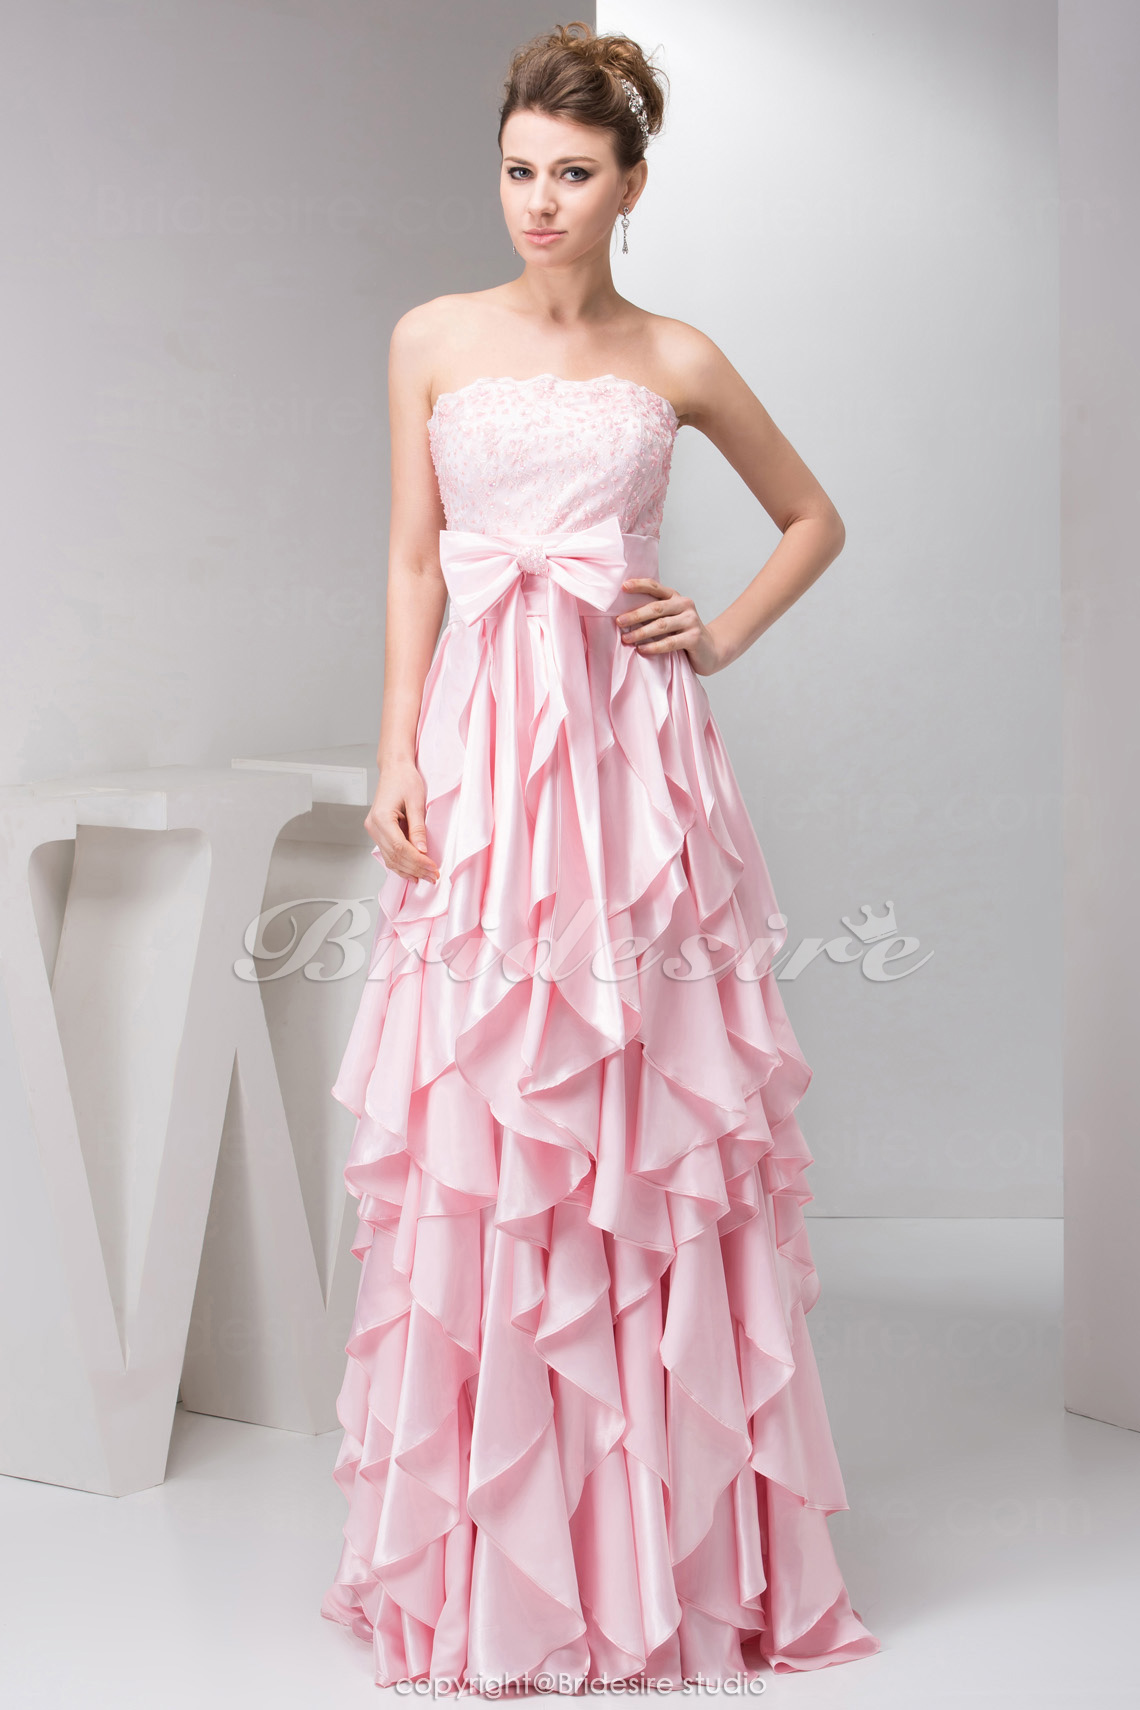 Sheath/Column Strapless Floor-length Sleeveless Stretch Satin Dress